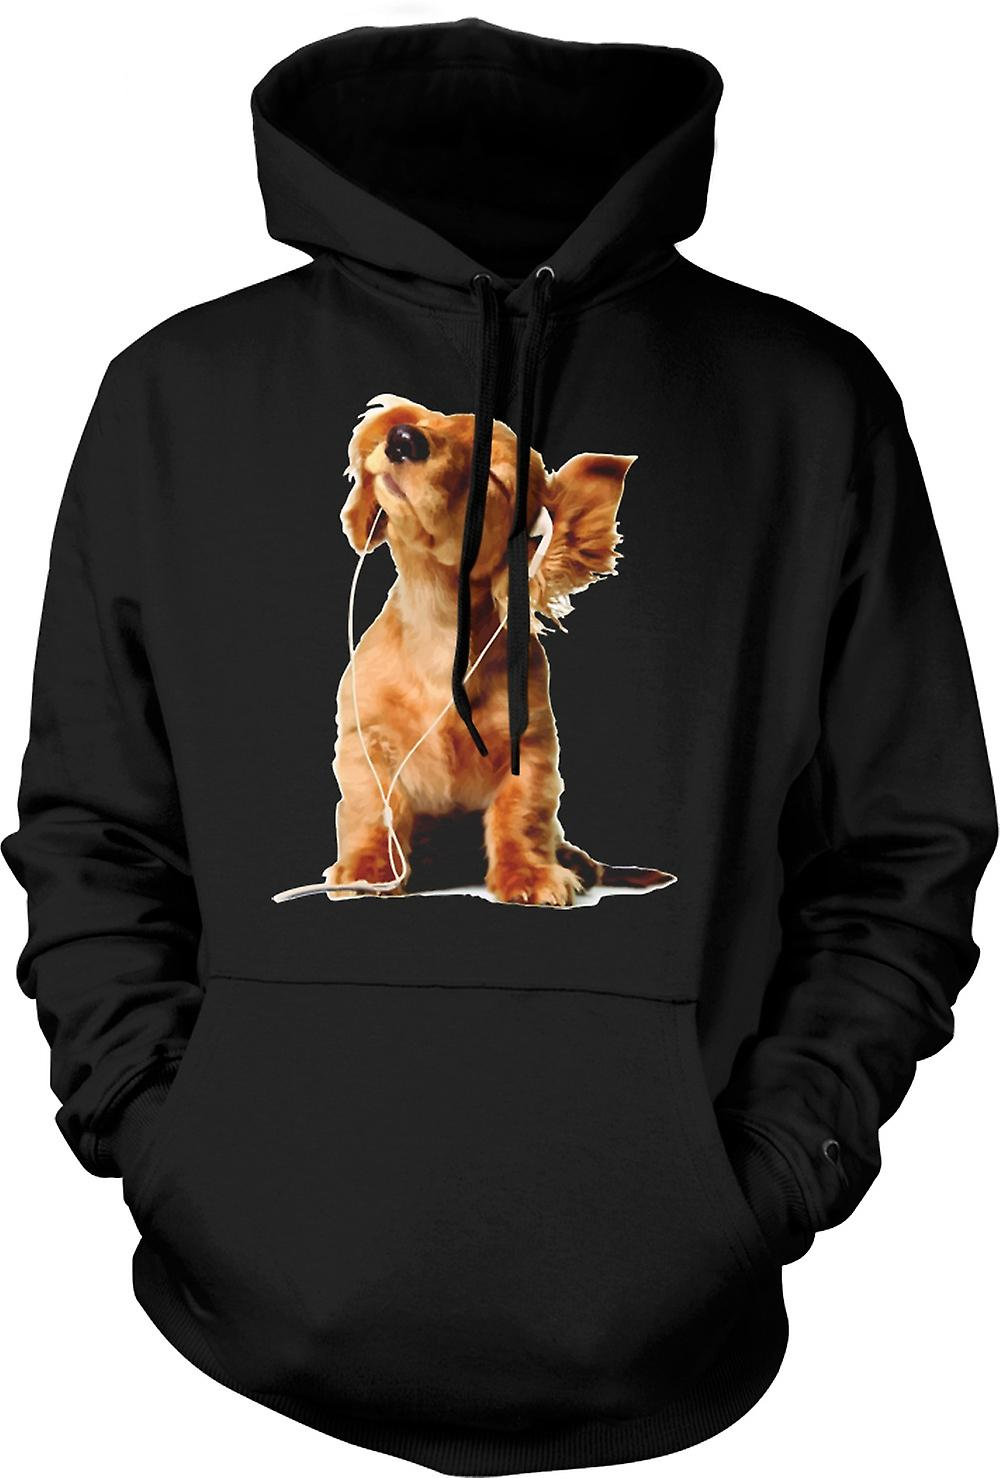 Mens Hoodie - Spaniel Listening To Ipod - Cute